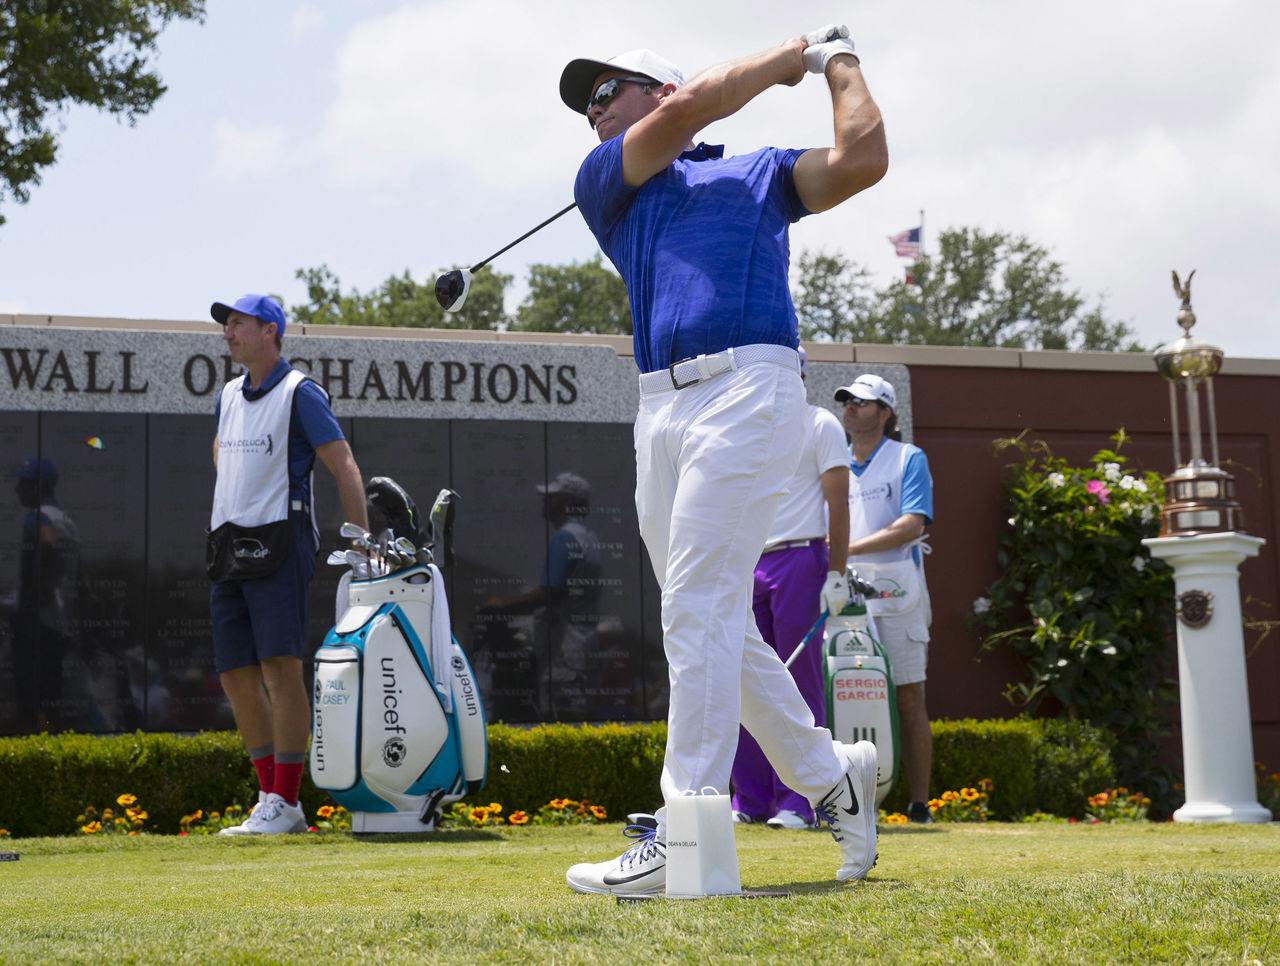 Cropped 2017 05 27t180153z 1036588659 nocid rtrmadp 3 pga dean deluca invitational third round